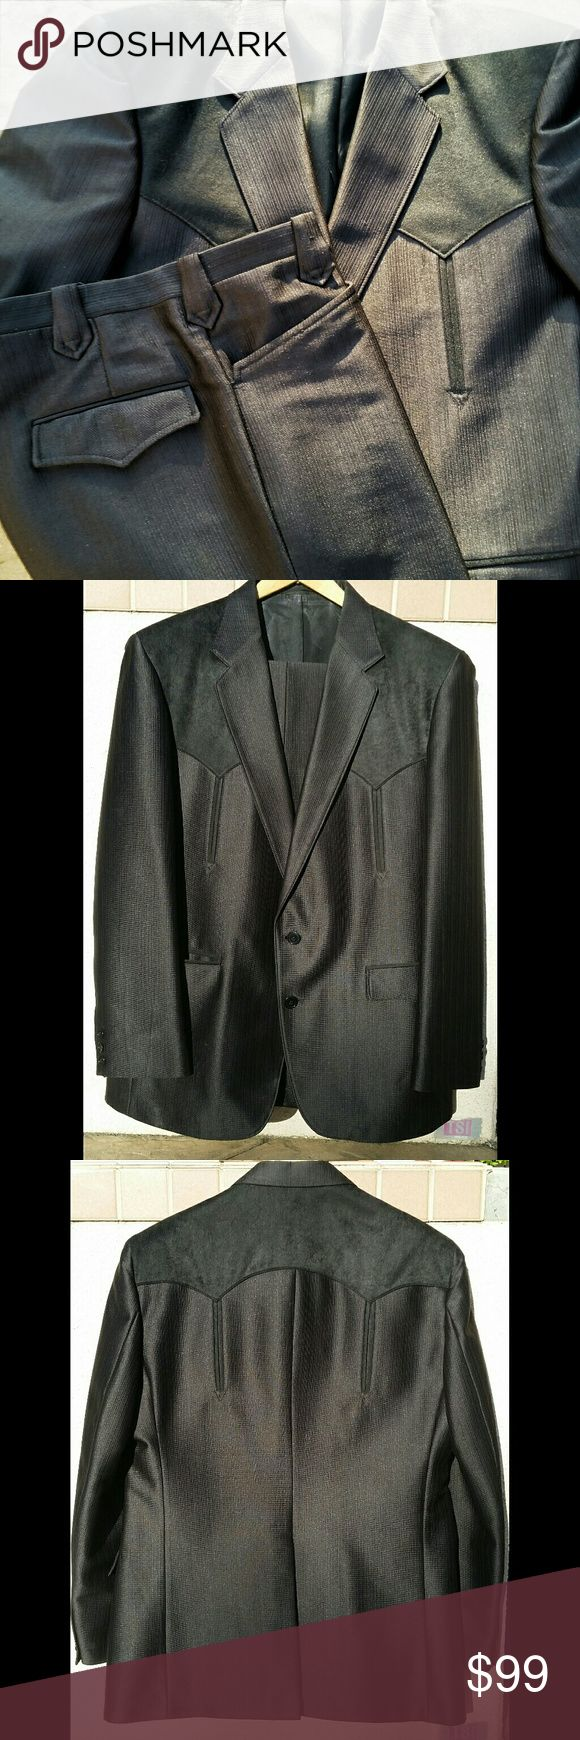 """Circle S Western Suit Western Dress Suit Color is dark brown almost black Jacket 42 Regular Pants 34  Inseam 29.5"""" (about an inch to let out) Excellent condition  Made in USA - Dallas Texas Freddies Finds Suits & Blazers Suits"""